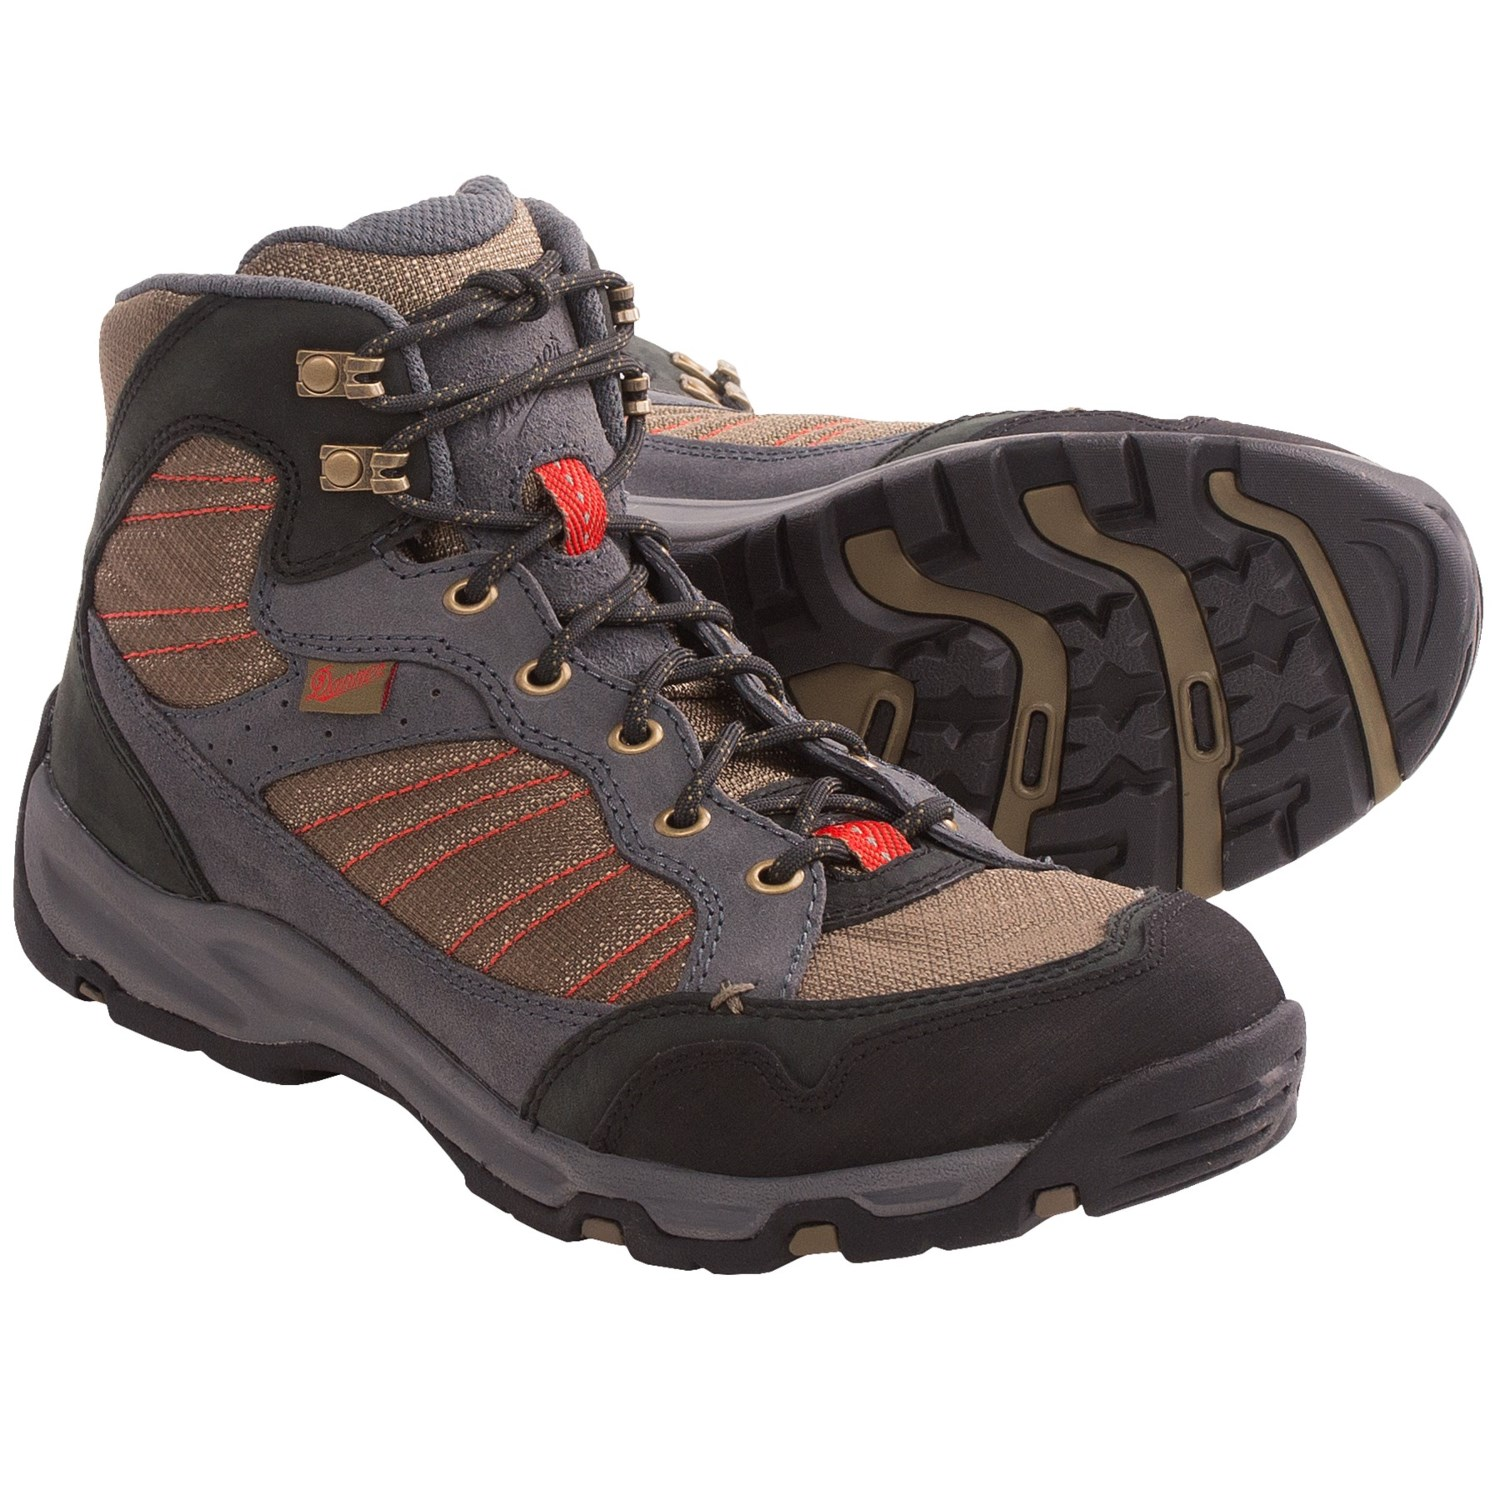 where to buy danner sobo mid hiking boots for